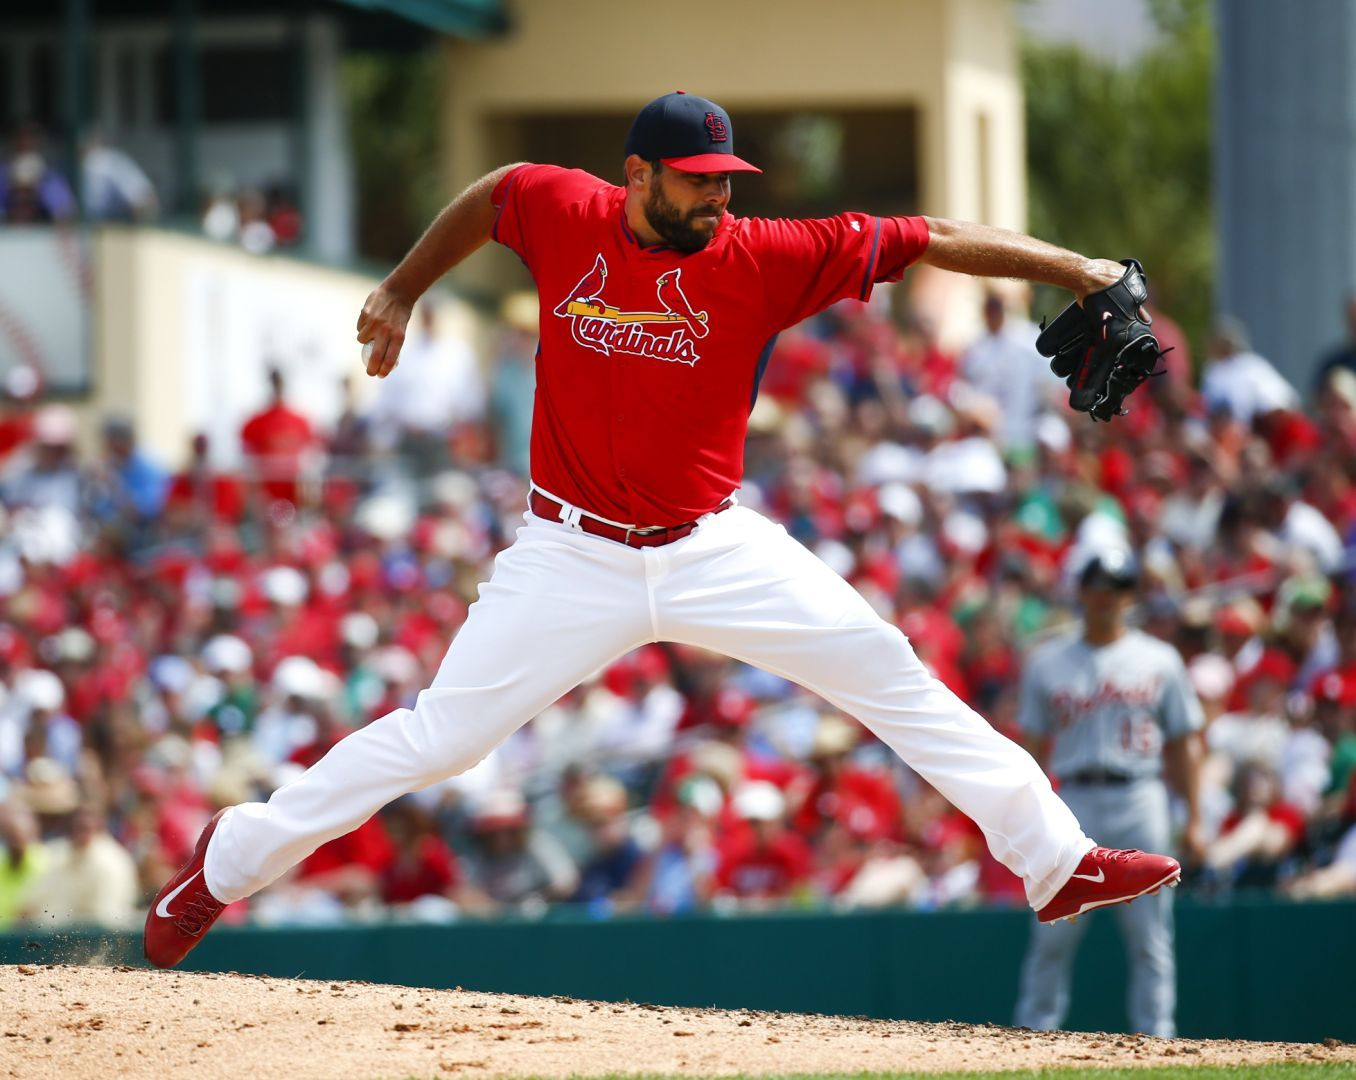 Cards' reliever Walden to take next step in rehab